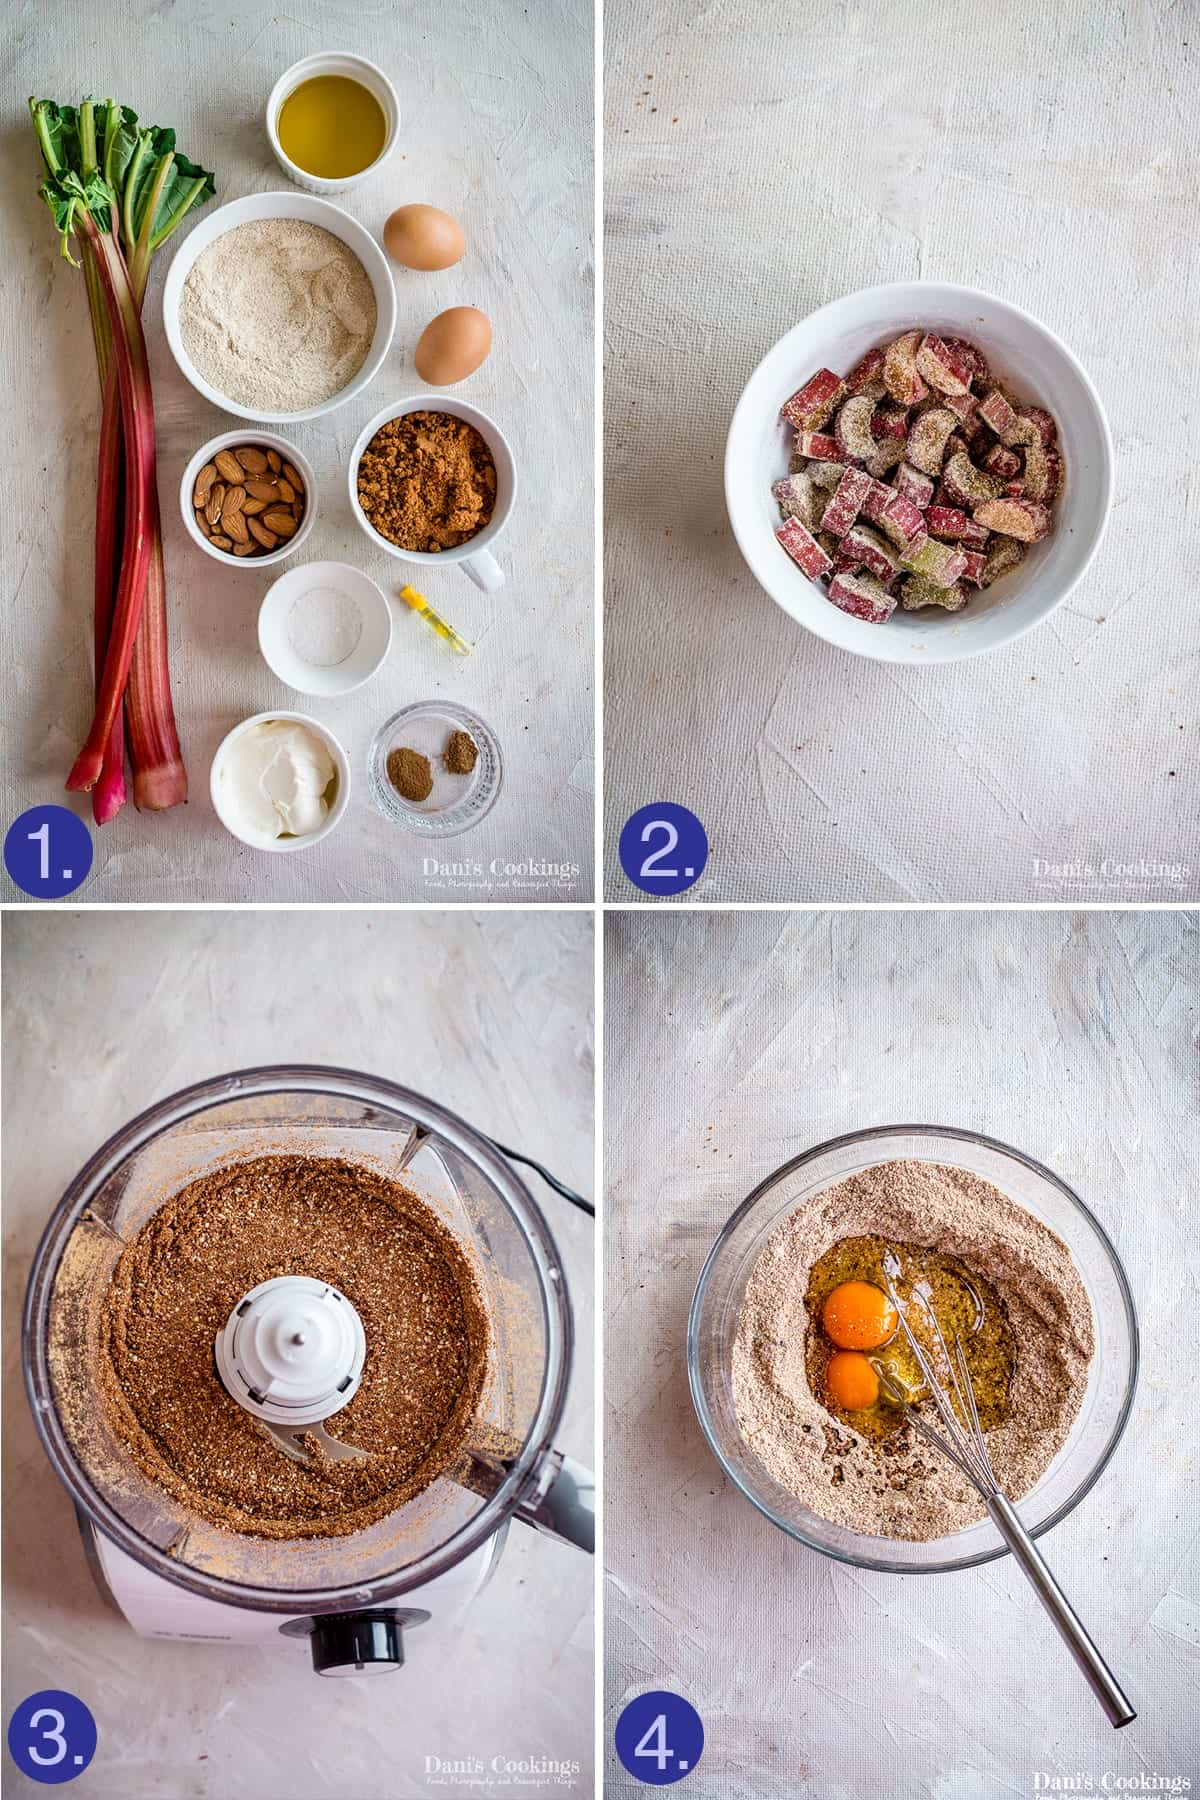 steps and ingredients for rhubarb cake